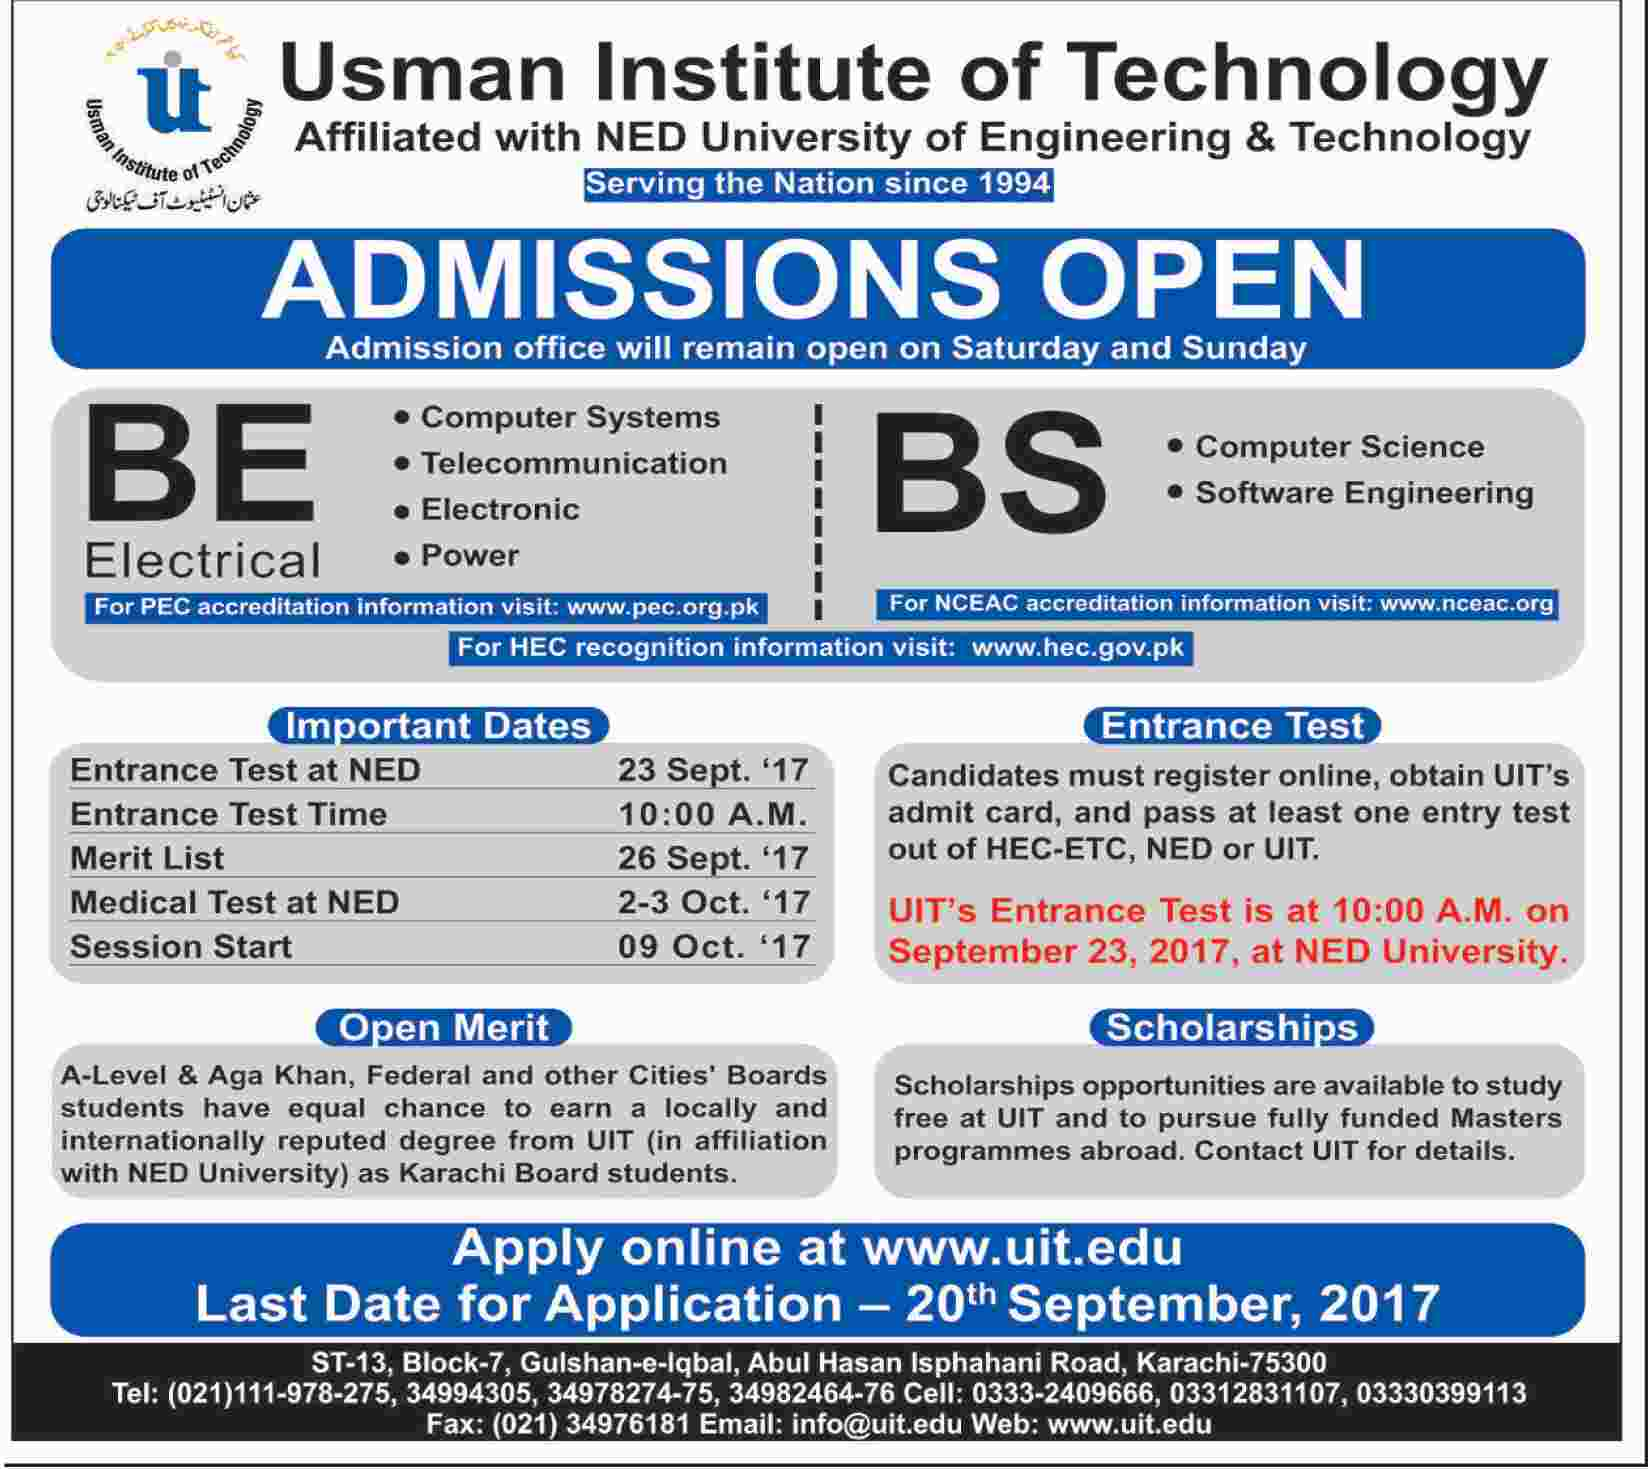 Usman Institute Of Technology Admission 2017 Uit Online Form, Last Date